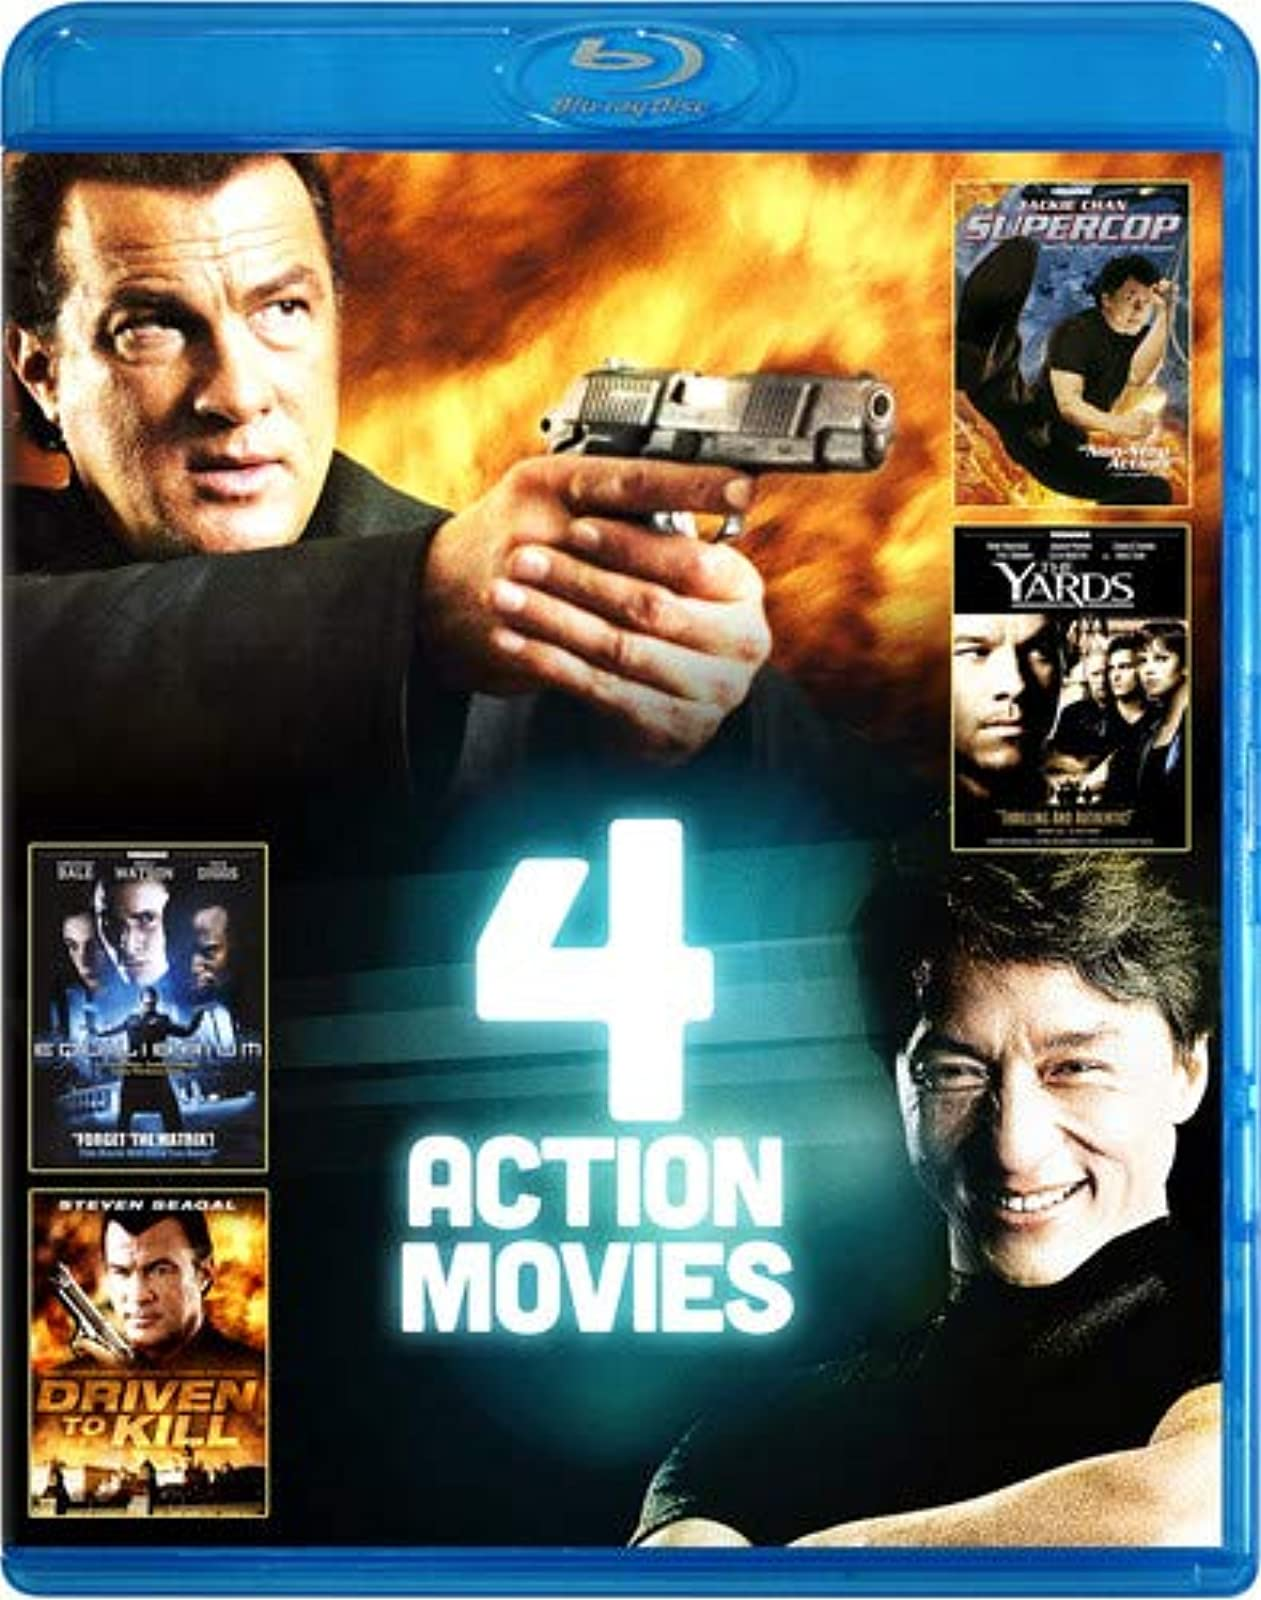 4-FILM Action Pack V.4 On Blu-Ray With Steven Seagal